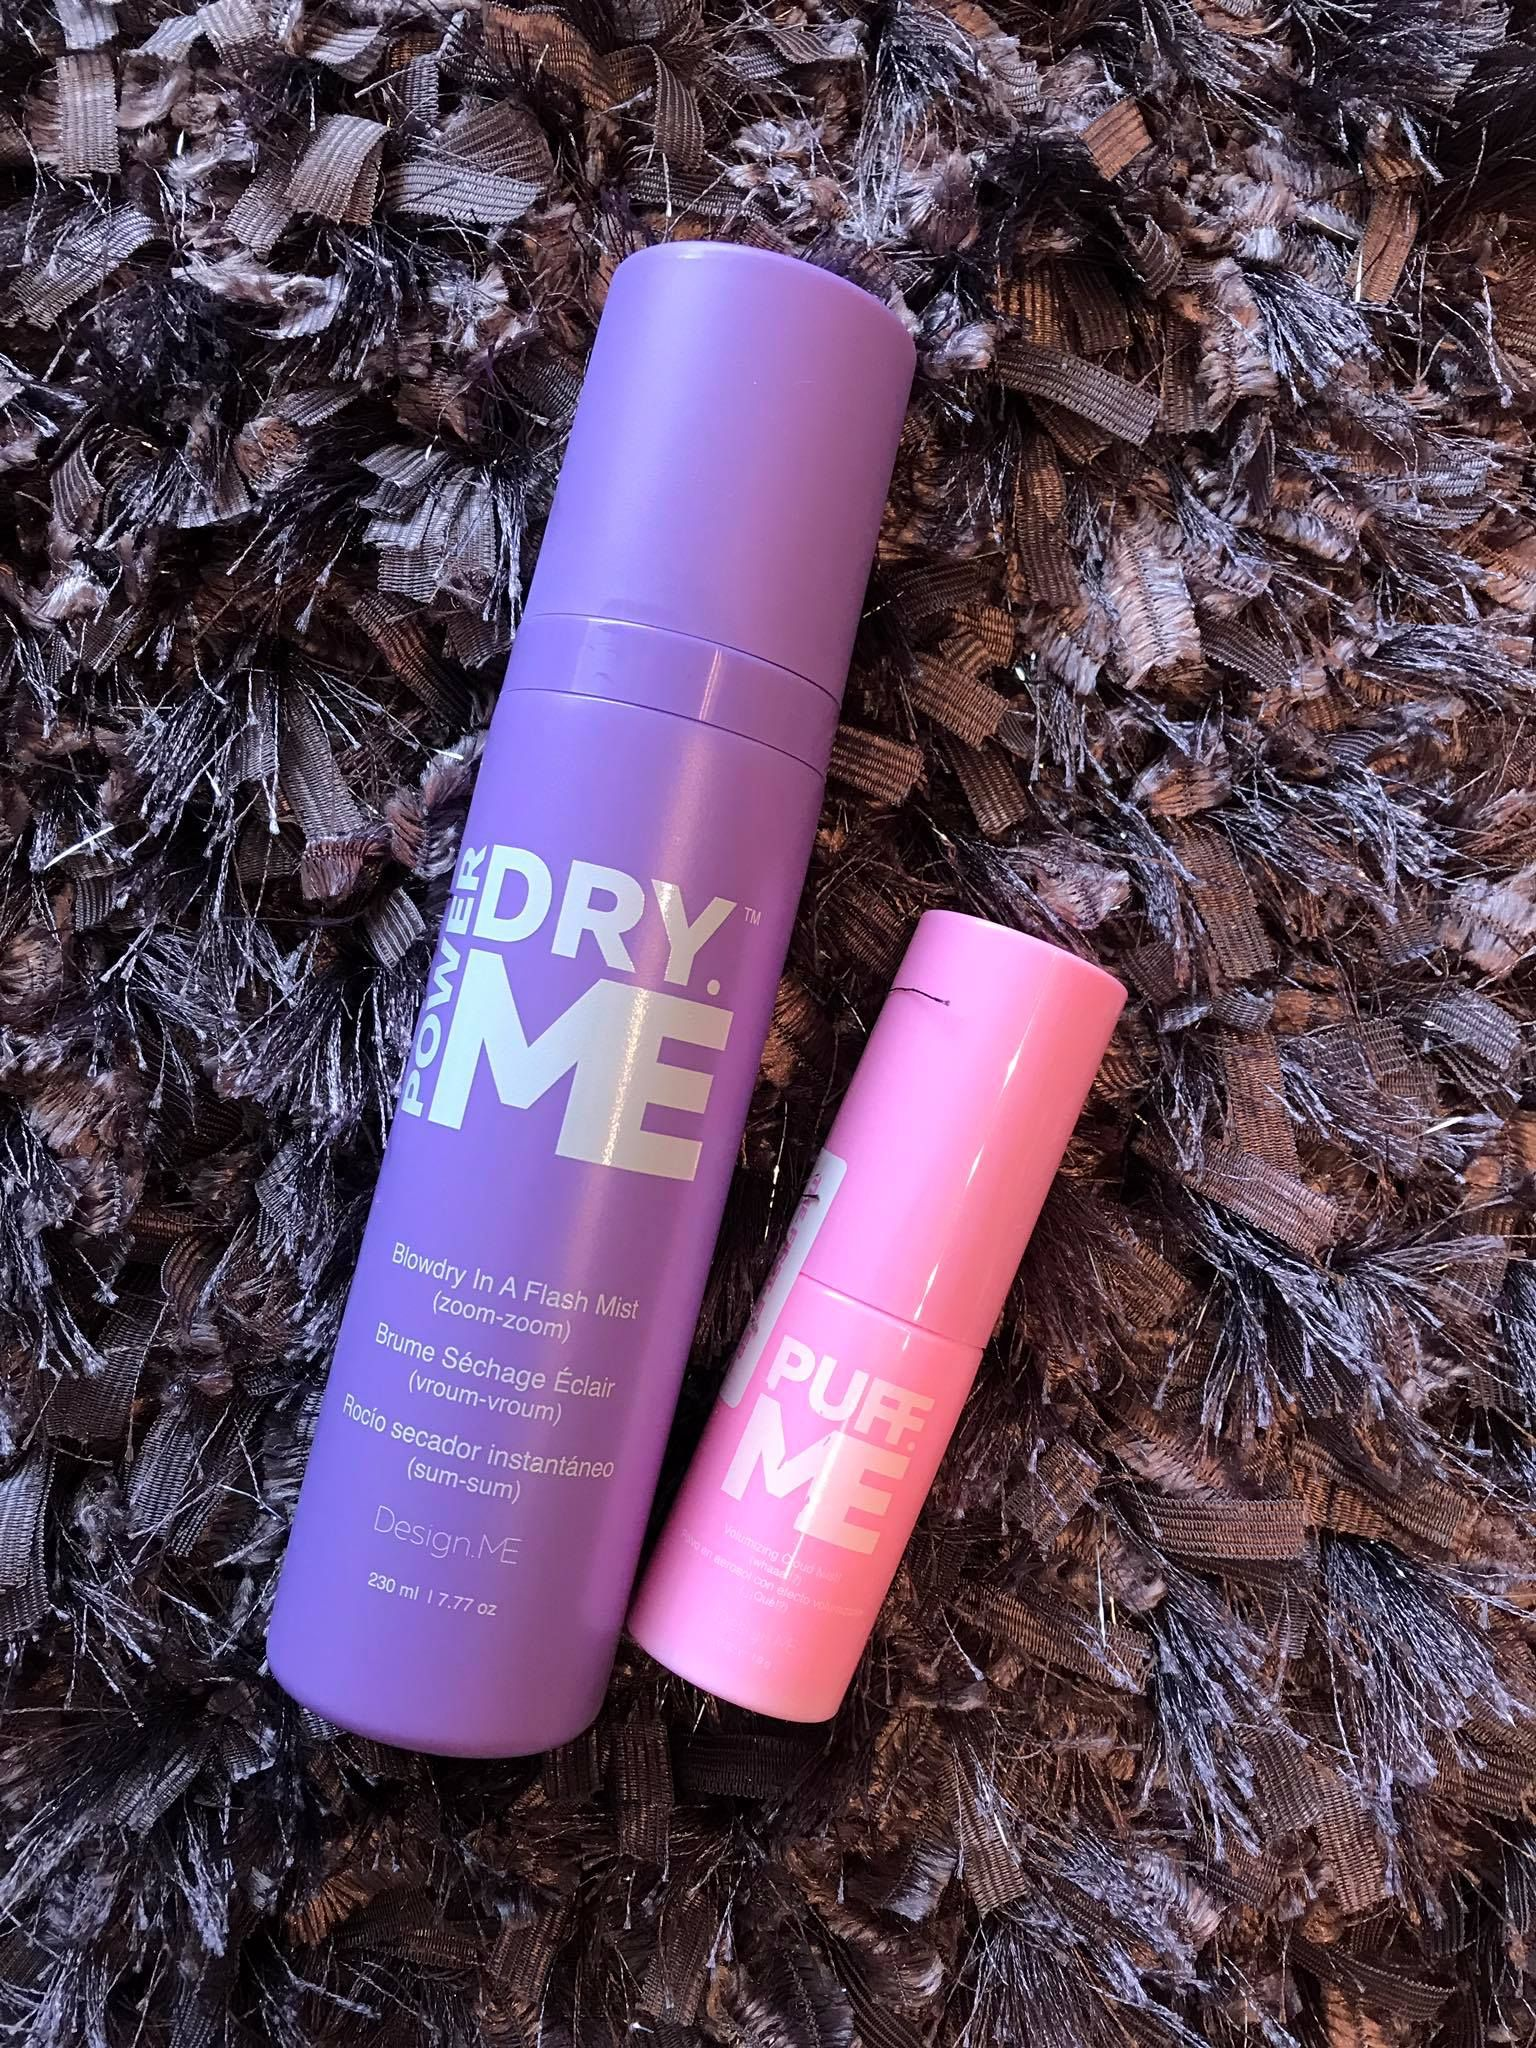 Puff Me Volumizing Powder In A Spray Pump Instant Results For Fuller Higher Hair